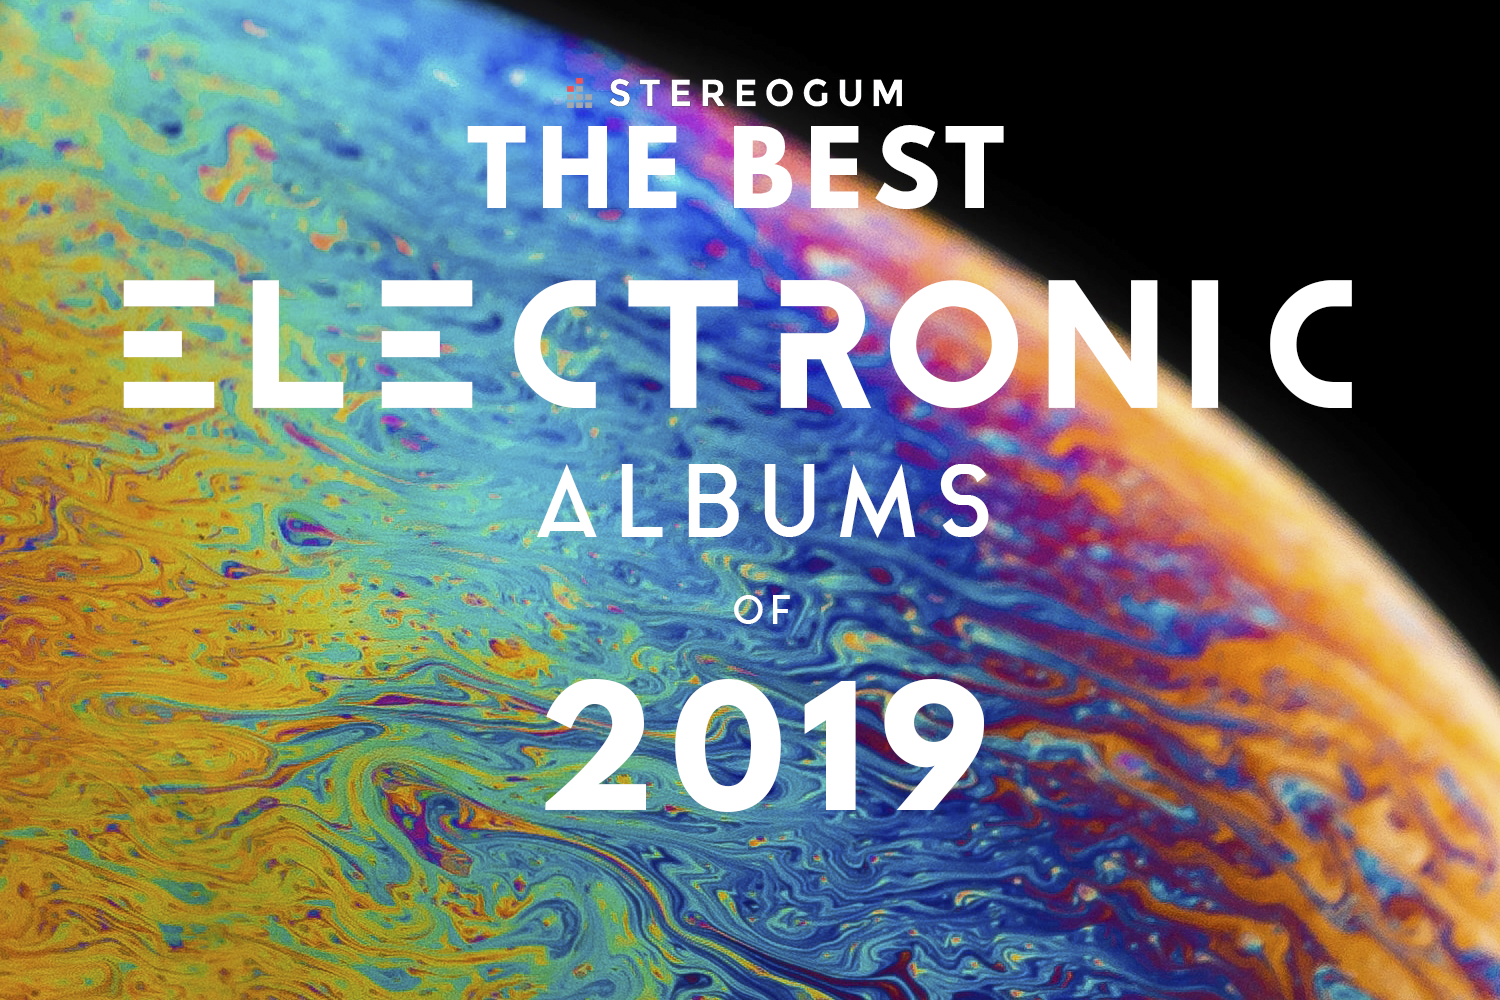 10-Best-Electronic-Albums-2019